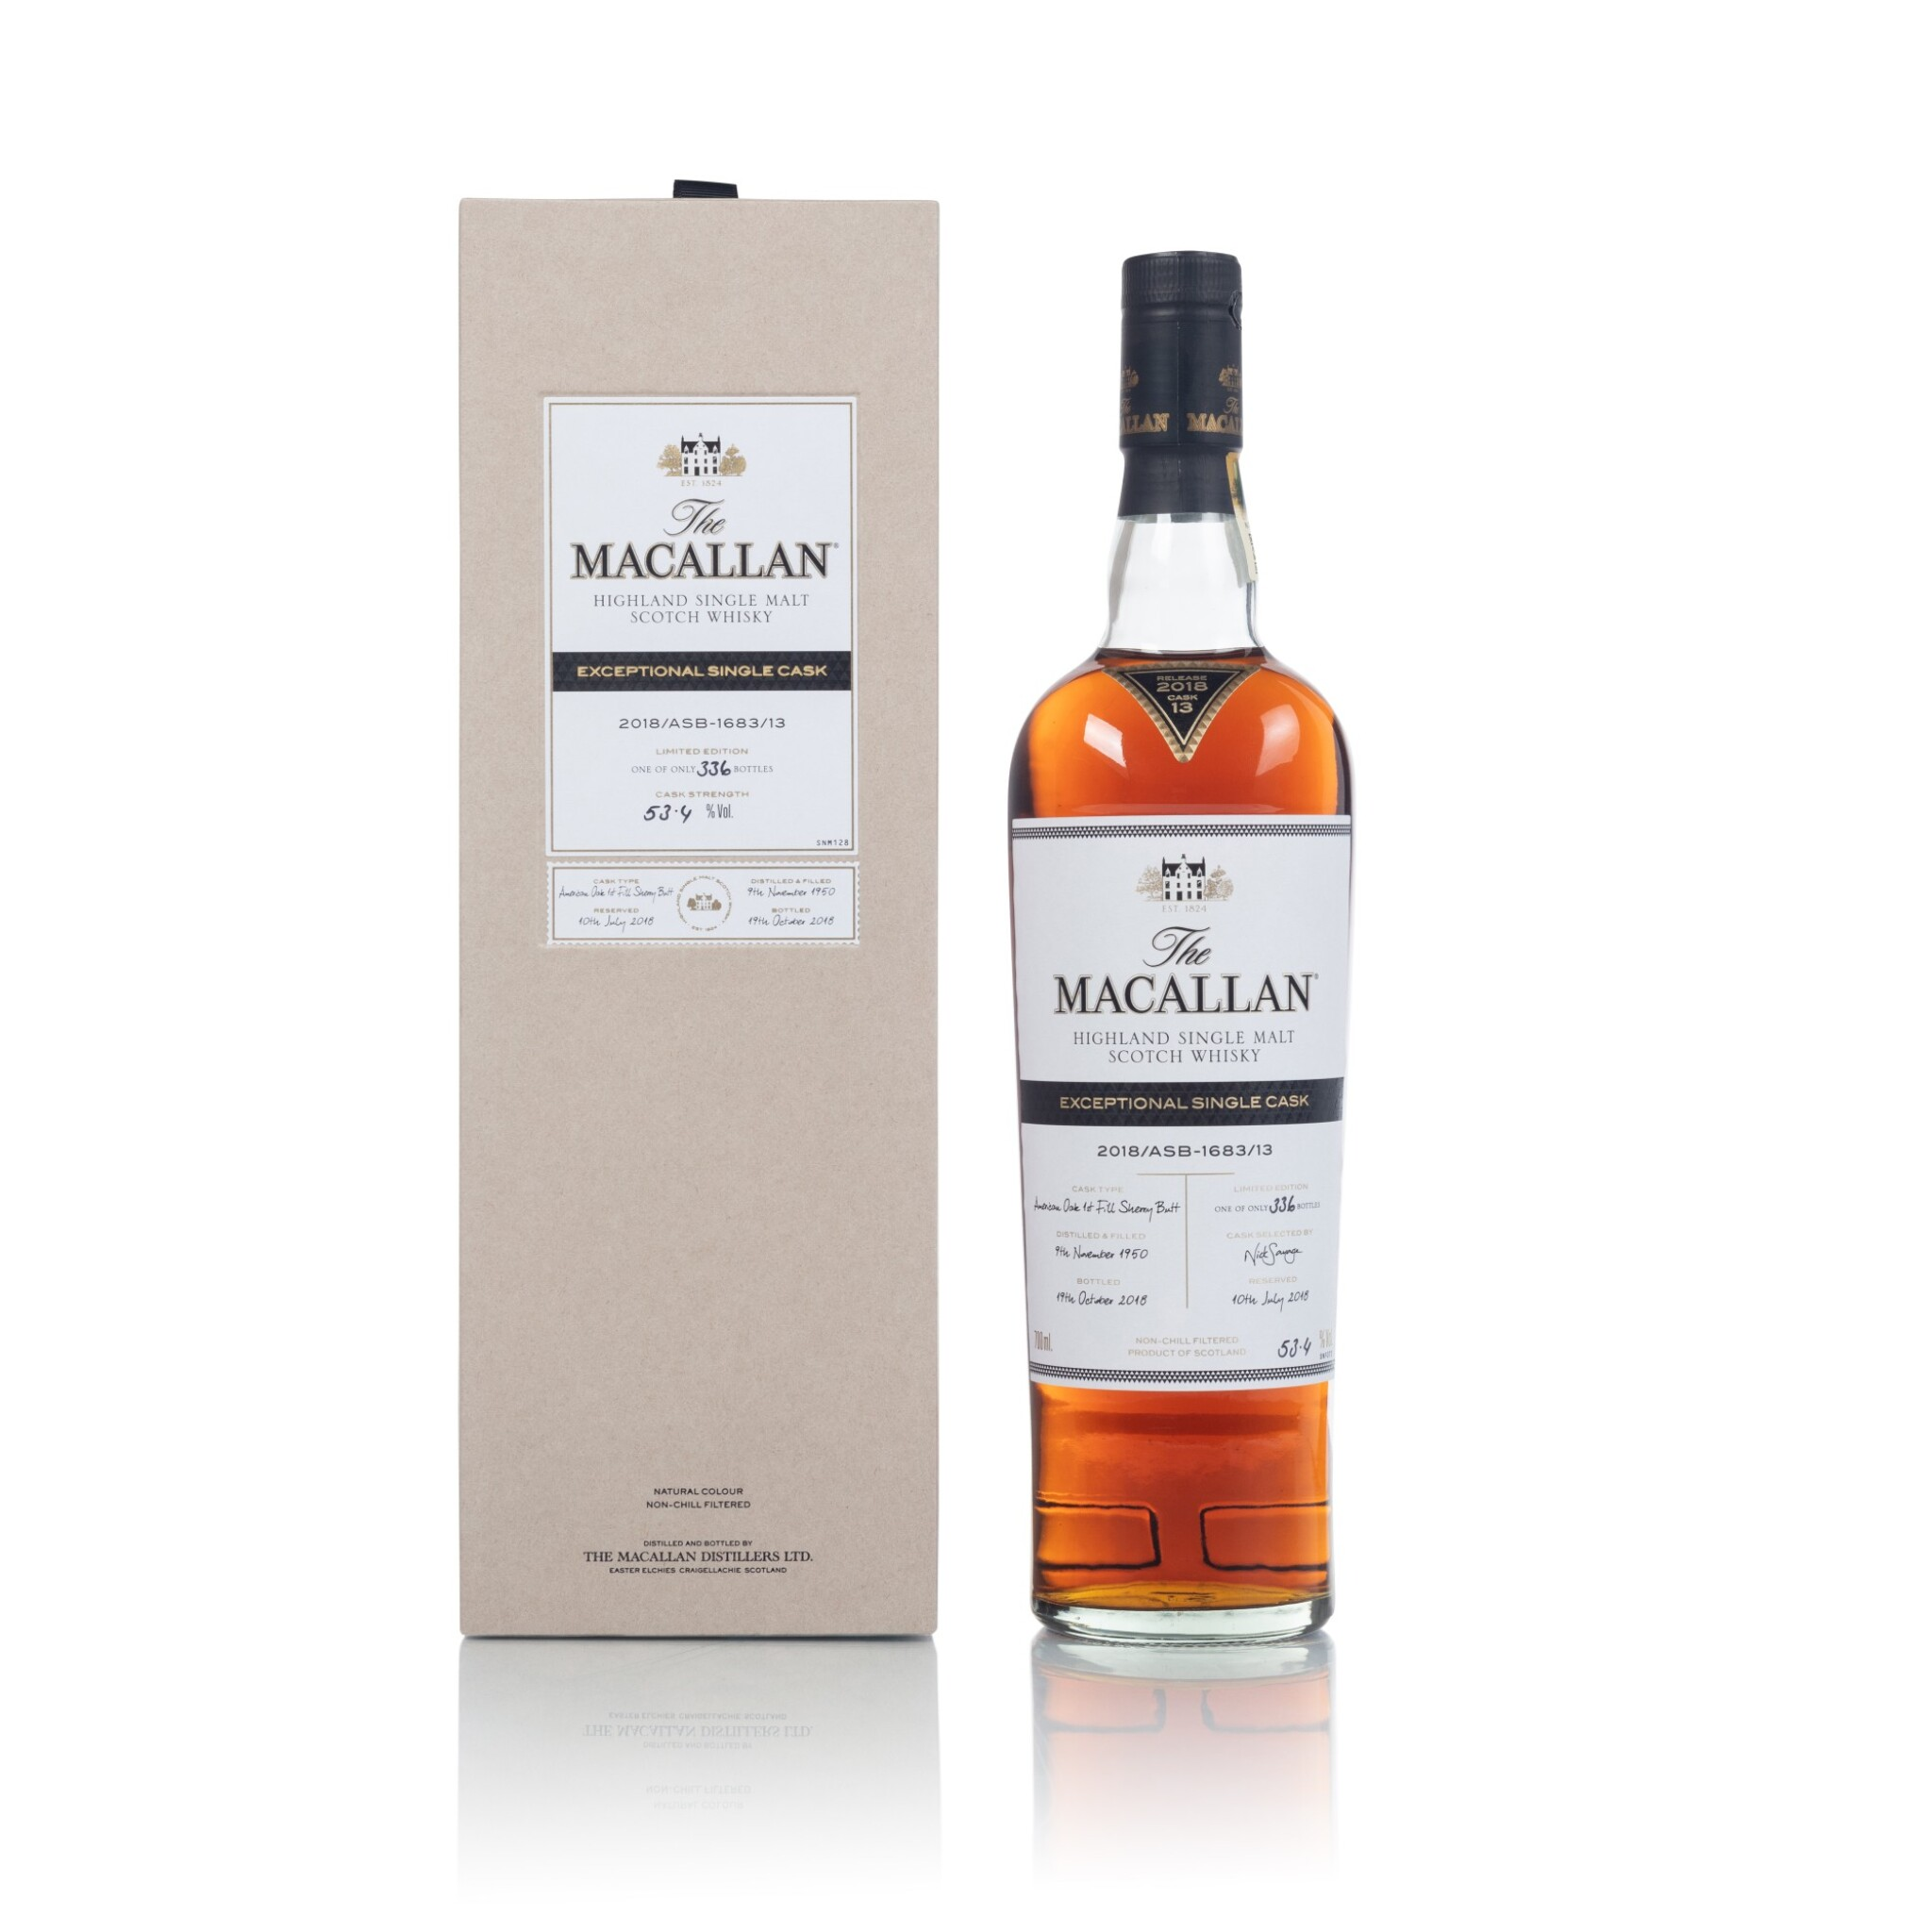 View full screen - View 1 of Lot 50. The Macallan Exceptional Single Cask 2018/ASB-1683/13 53.4 abv 1950 (1 BT70).